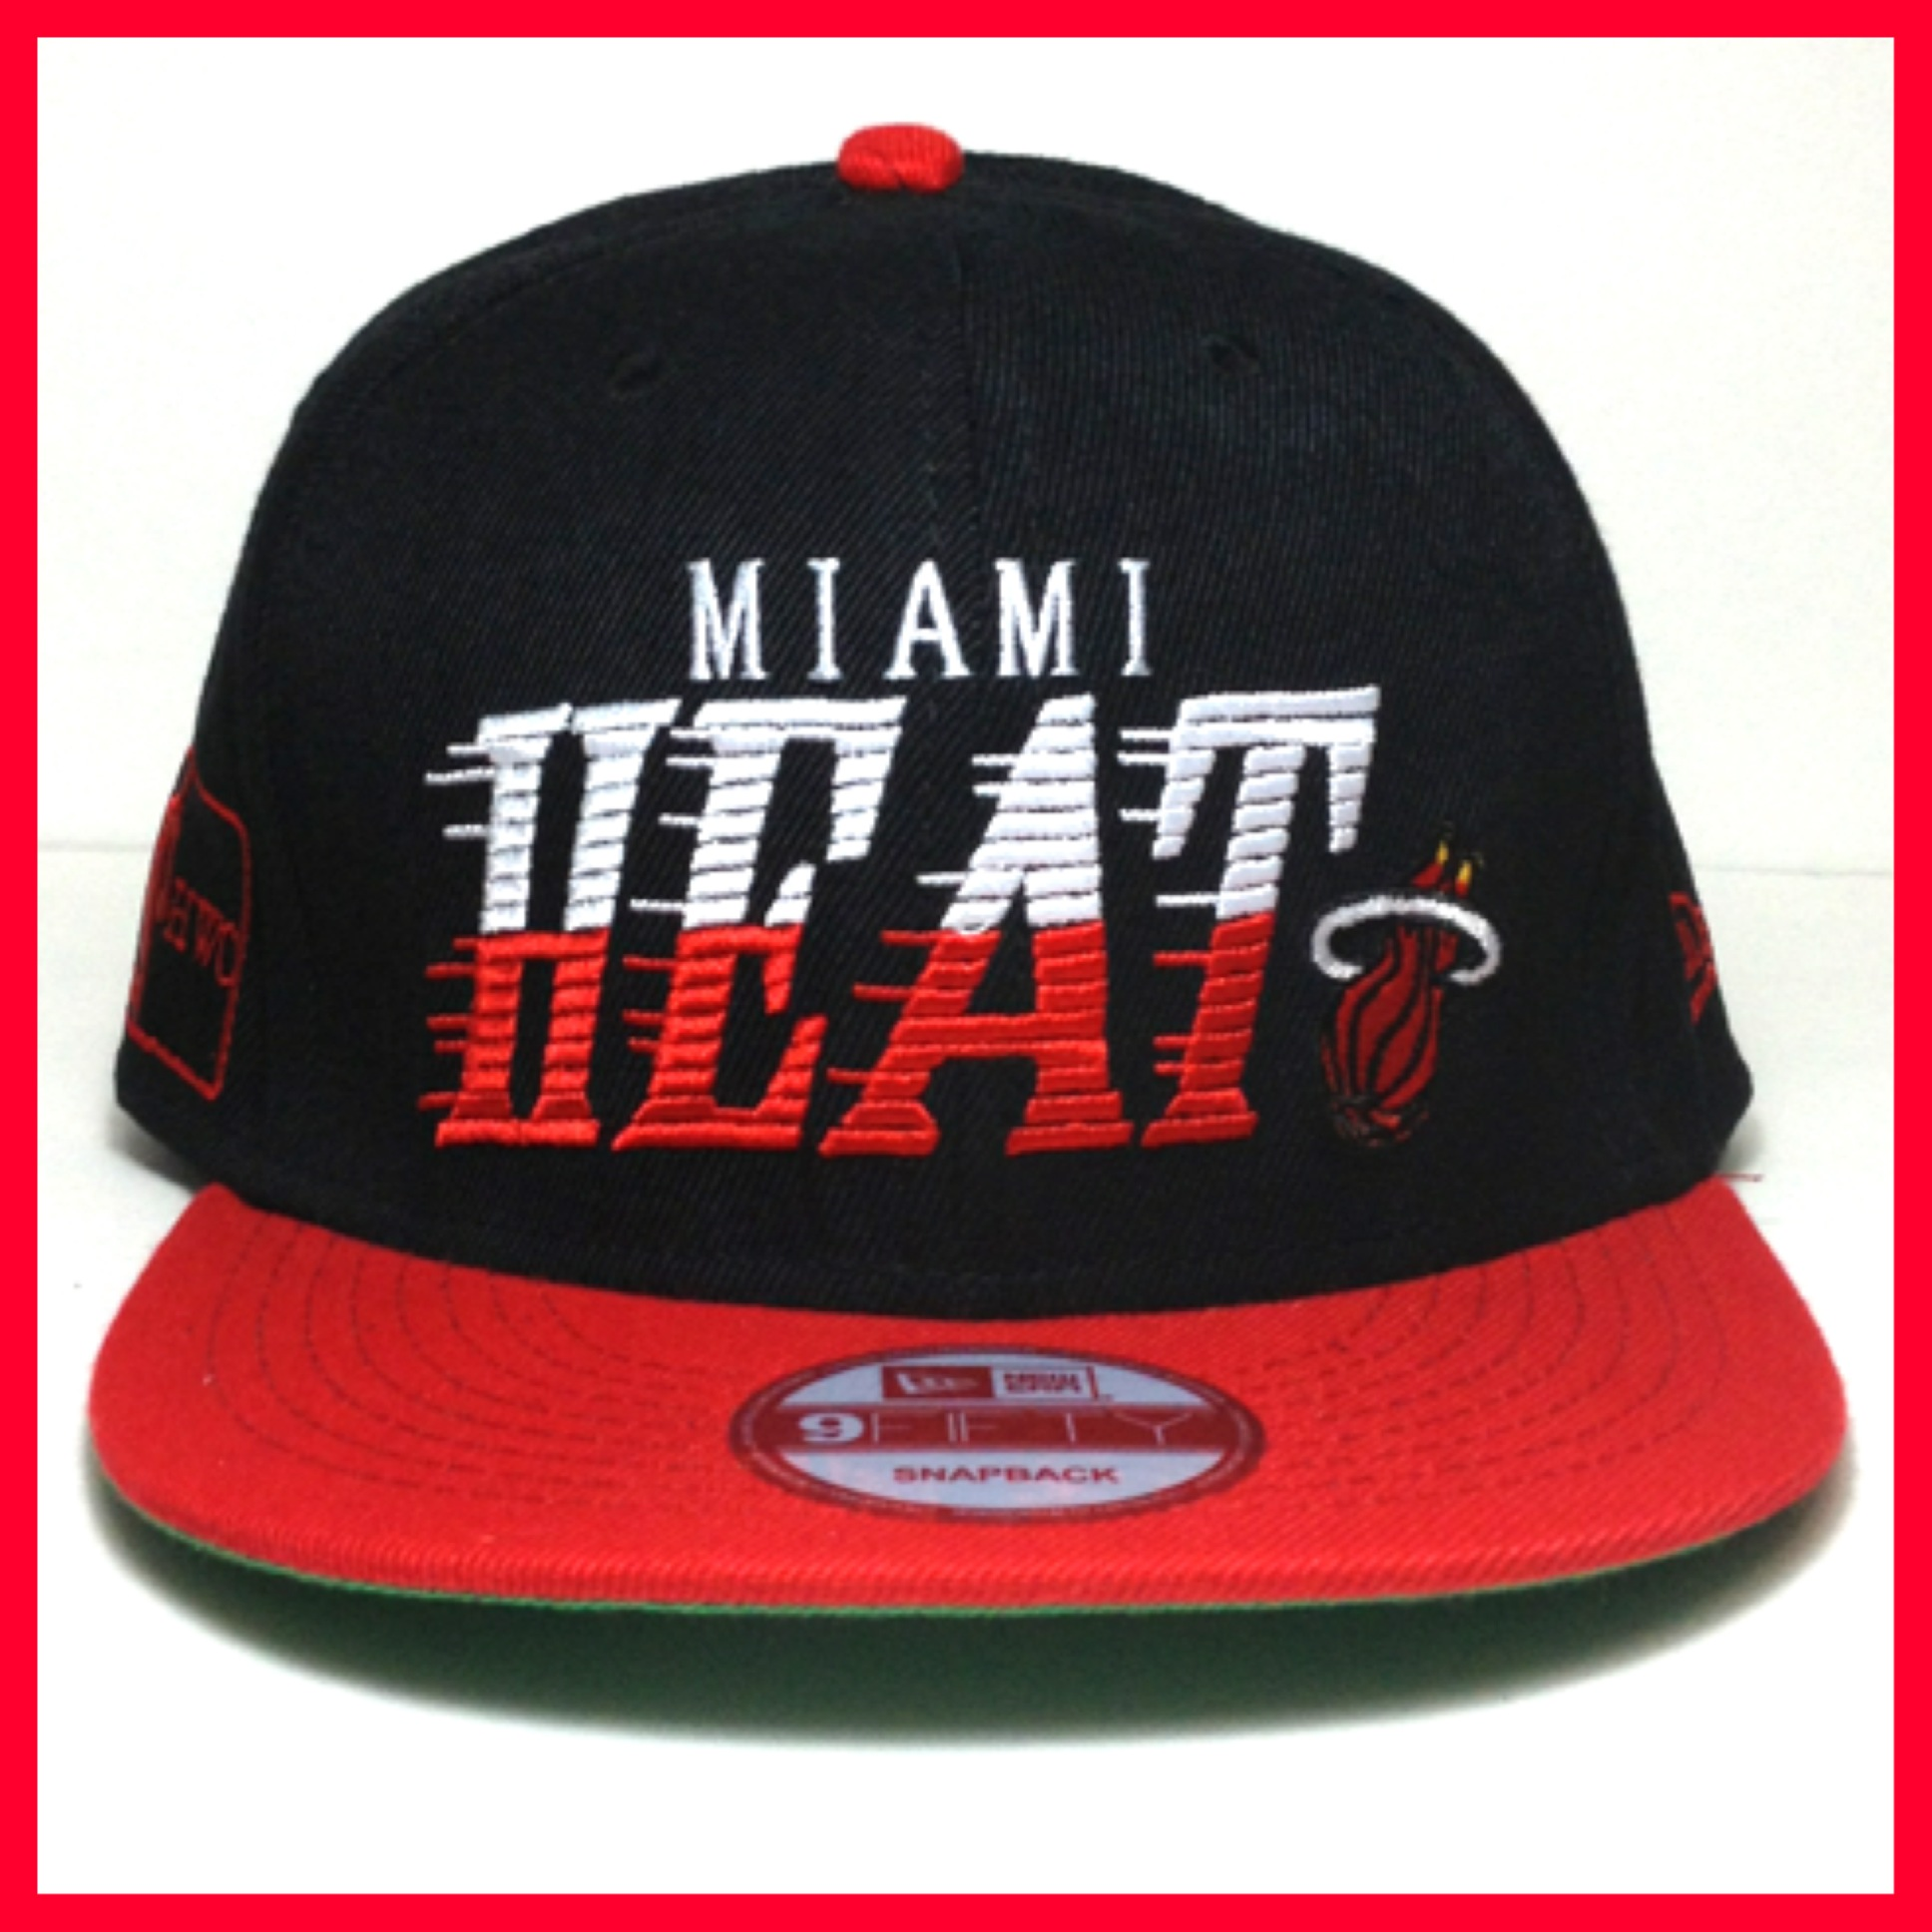 Miami heat store coupon 2018